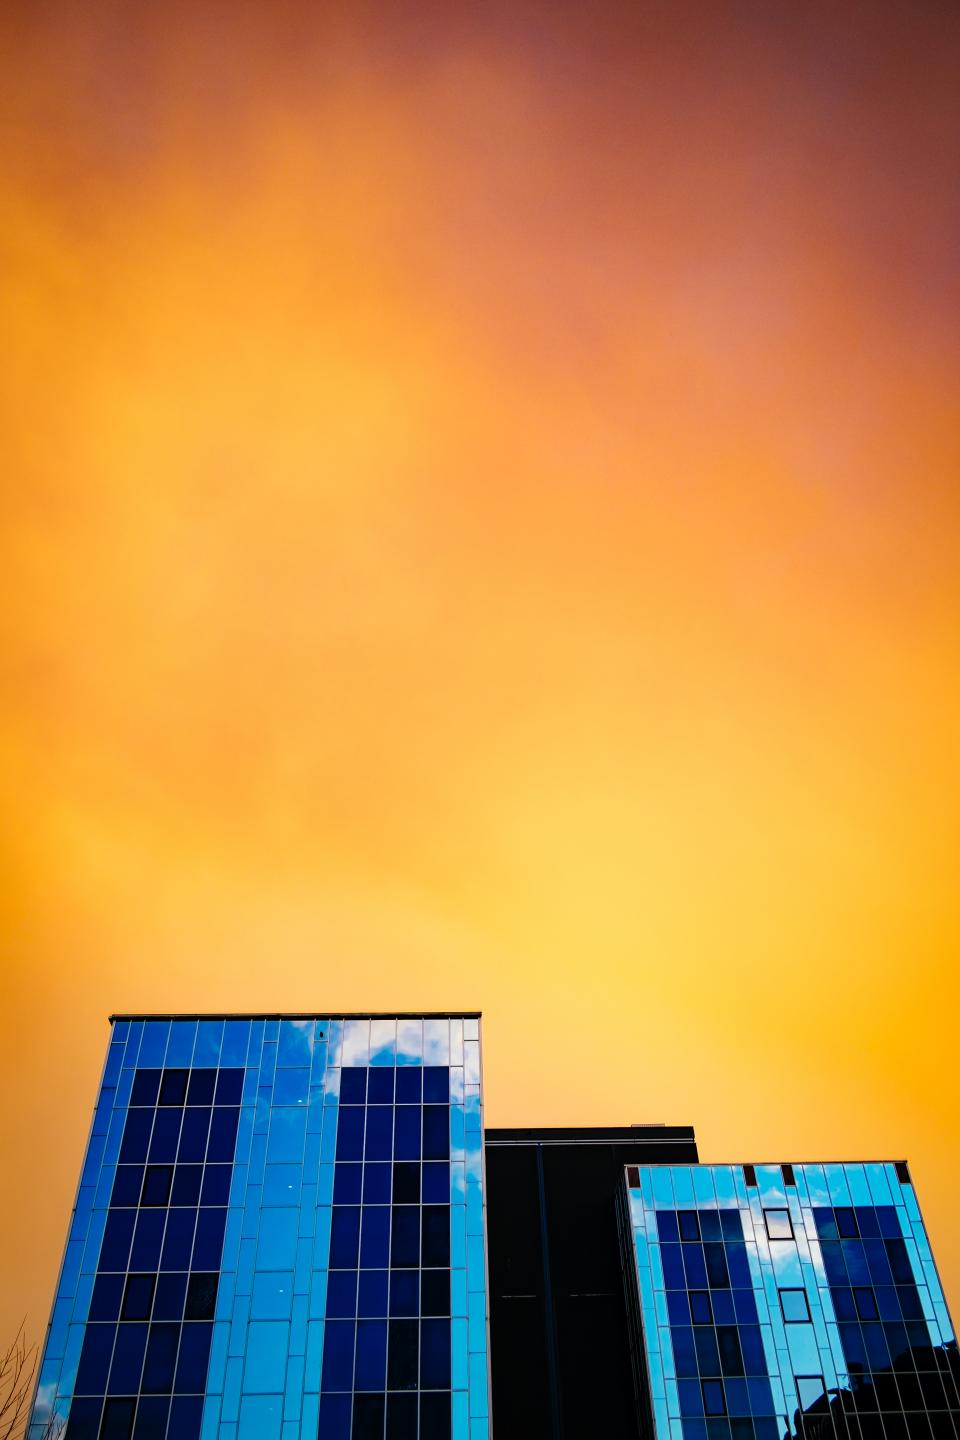 sunset dusk sky yellow buildings architecture windows